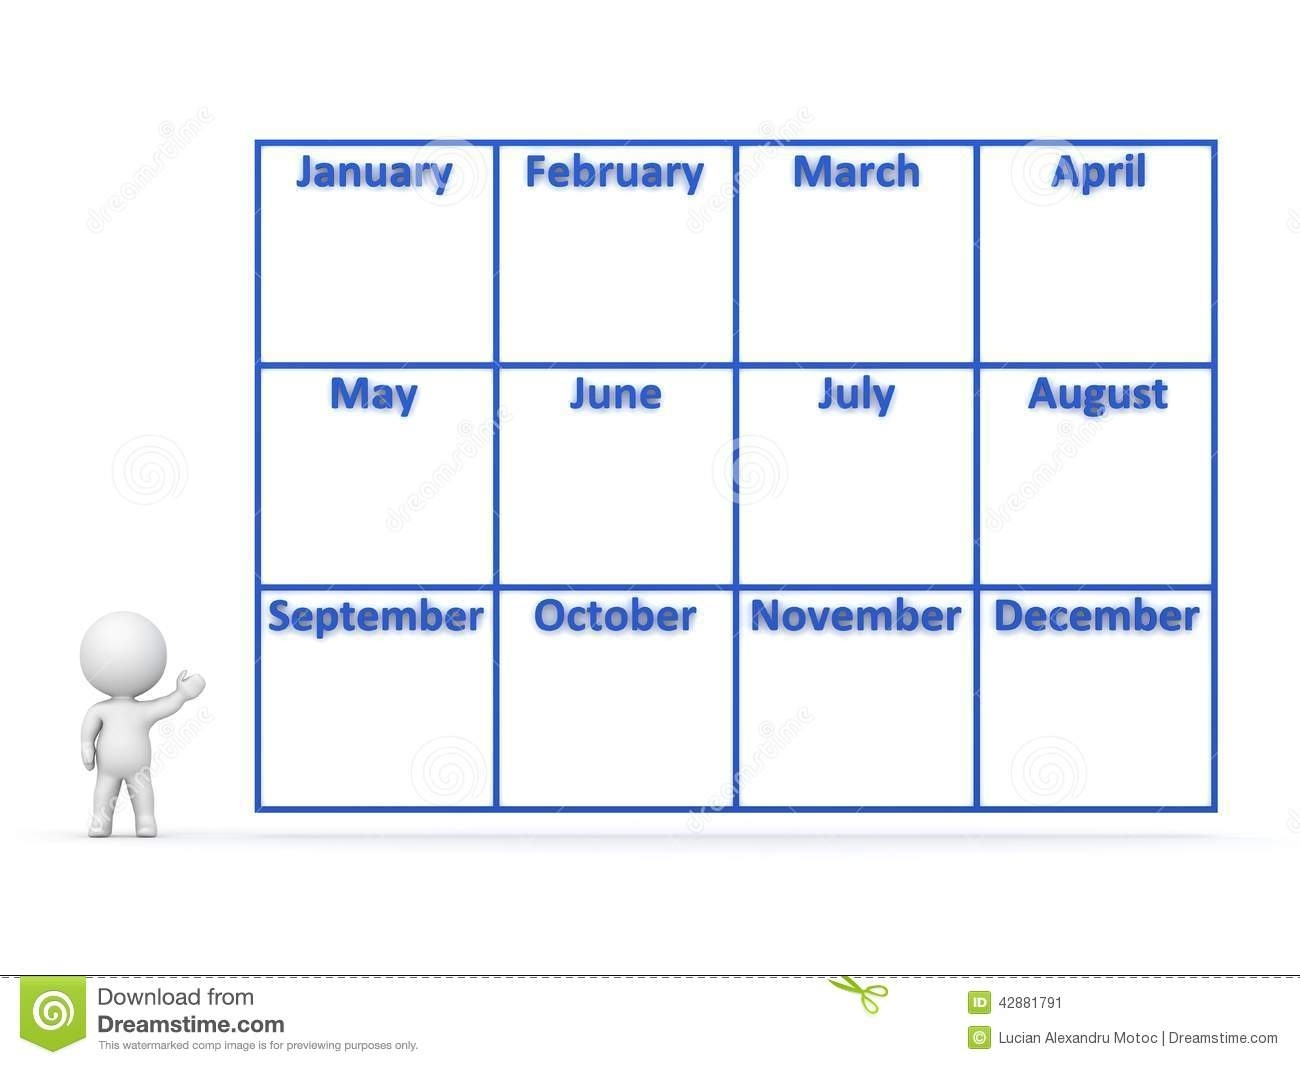 3D Character Showing Year Calendar With 12 Months Stock Illustration Months Of Year Calendar